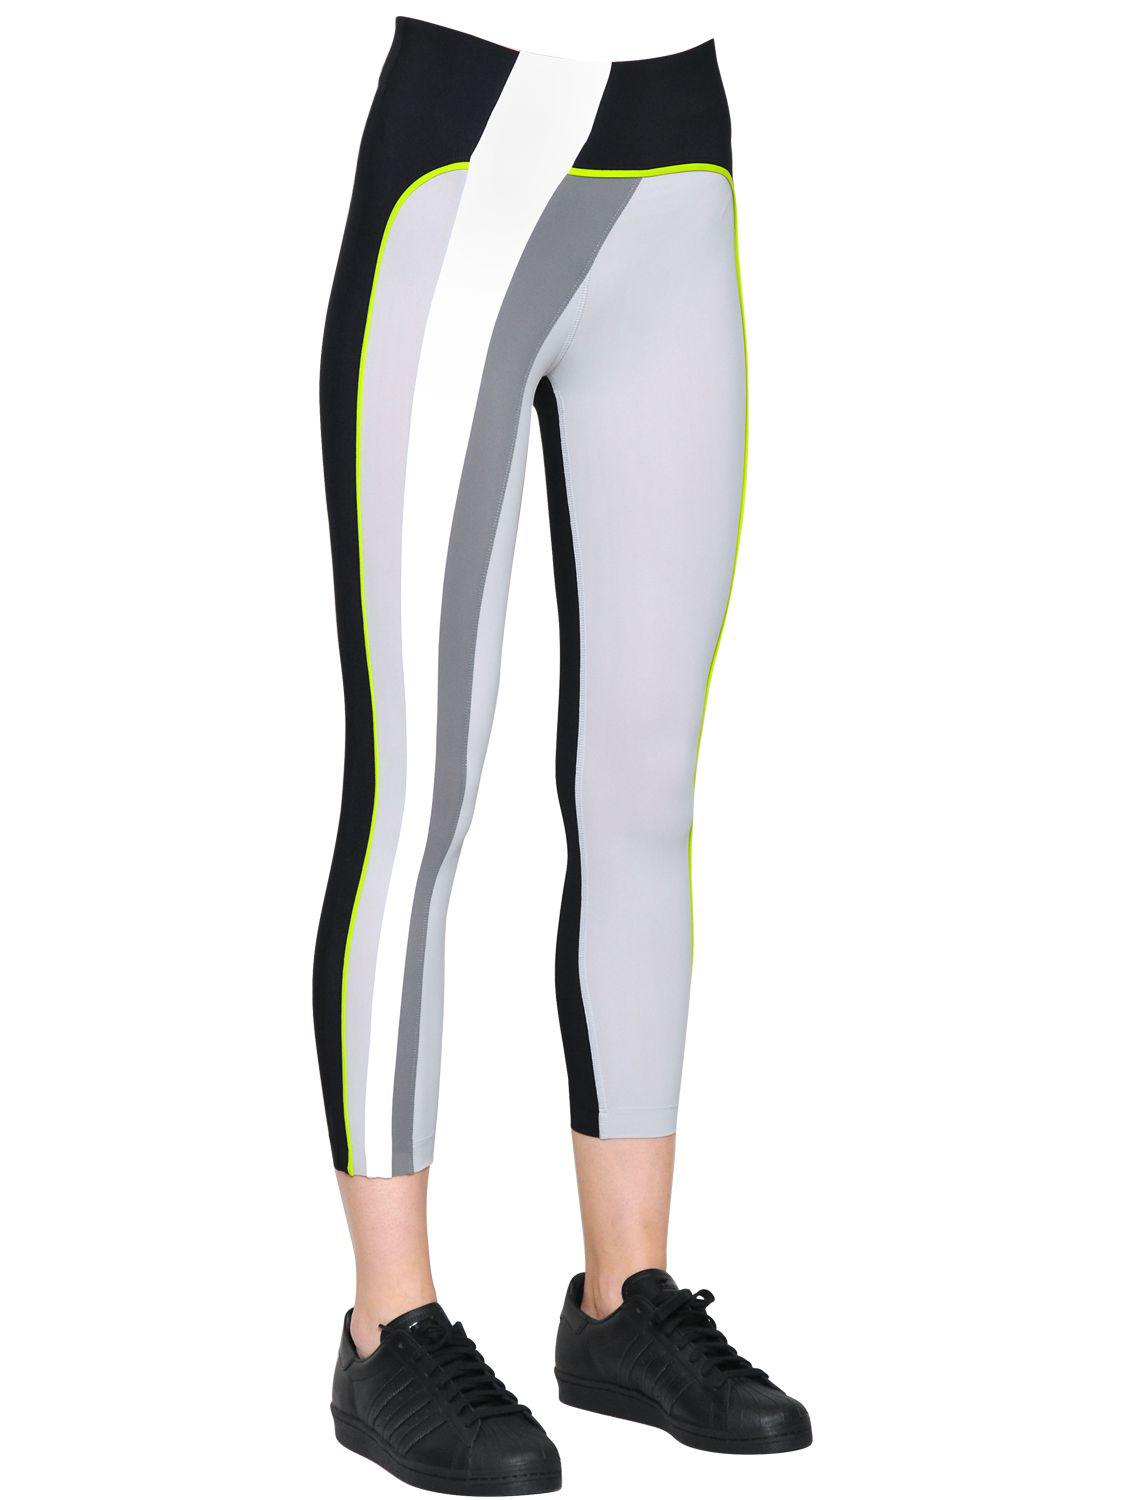 Original Sale Online Low Cost Cheap Online KIMI 7/8 LEGGINGS IN ACTIVE MICROFIBER - TROUSERS - Leggings No Ka'Oi Free Shipping Buy Looking For MLUODUoJi